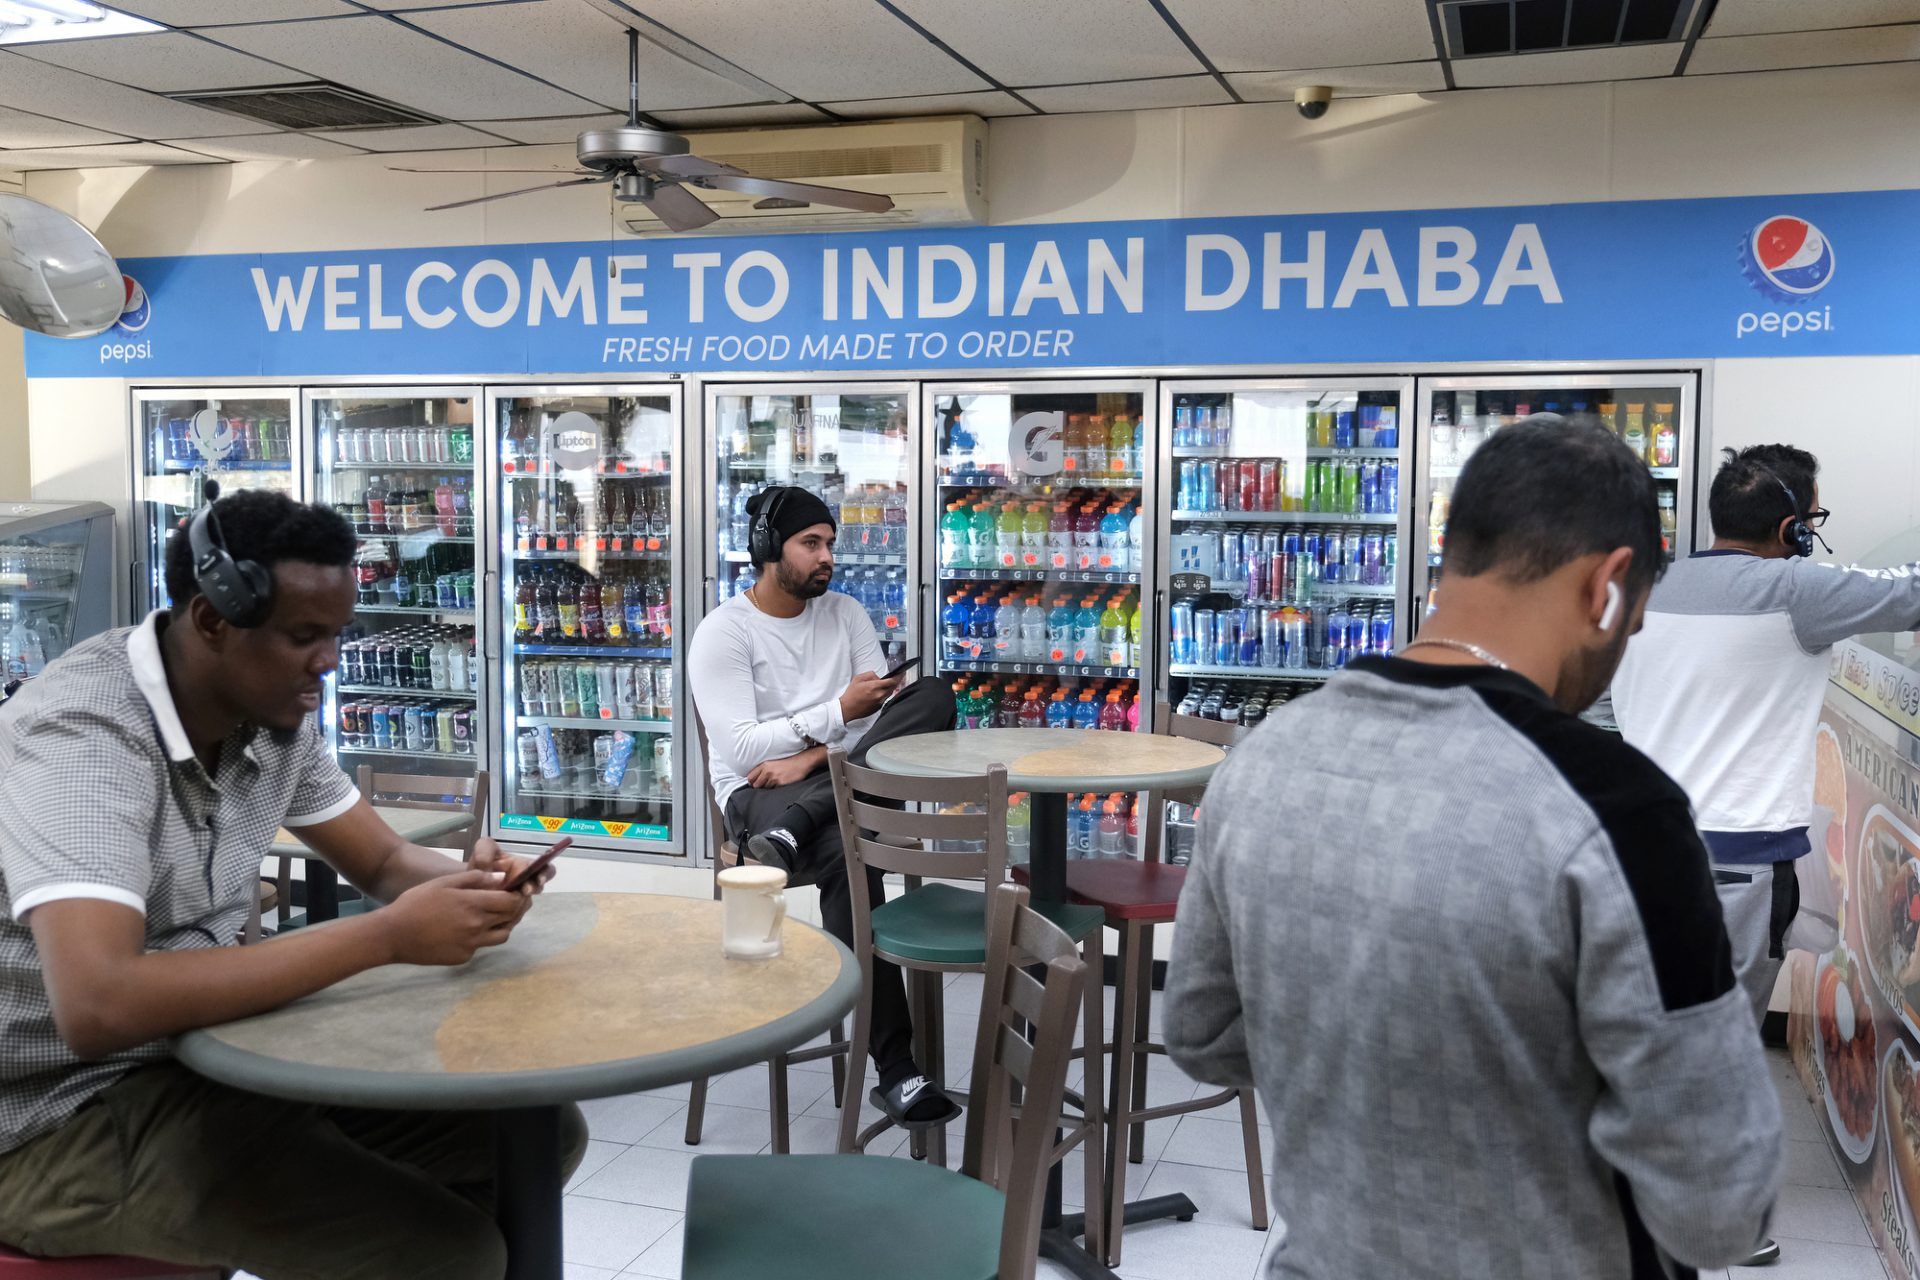 A look inside Eat Spice on Oct. 24, 2019, in the truck stop on route 534 off I-80 in White Haven, Pennsylvania. The restaurant caters to members of the Sikh community and as there is a large population of truckers from that community, the Indian Dhaba and Mediterranean dishes become hard to find on the road.